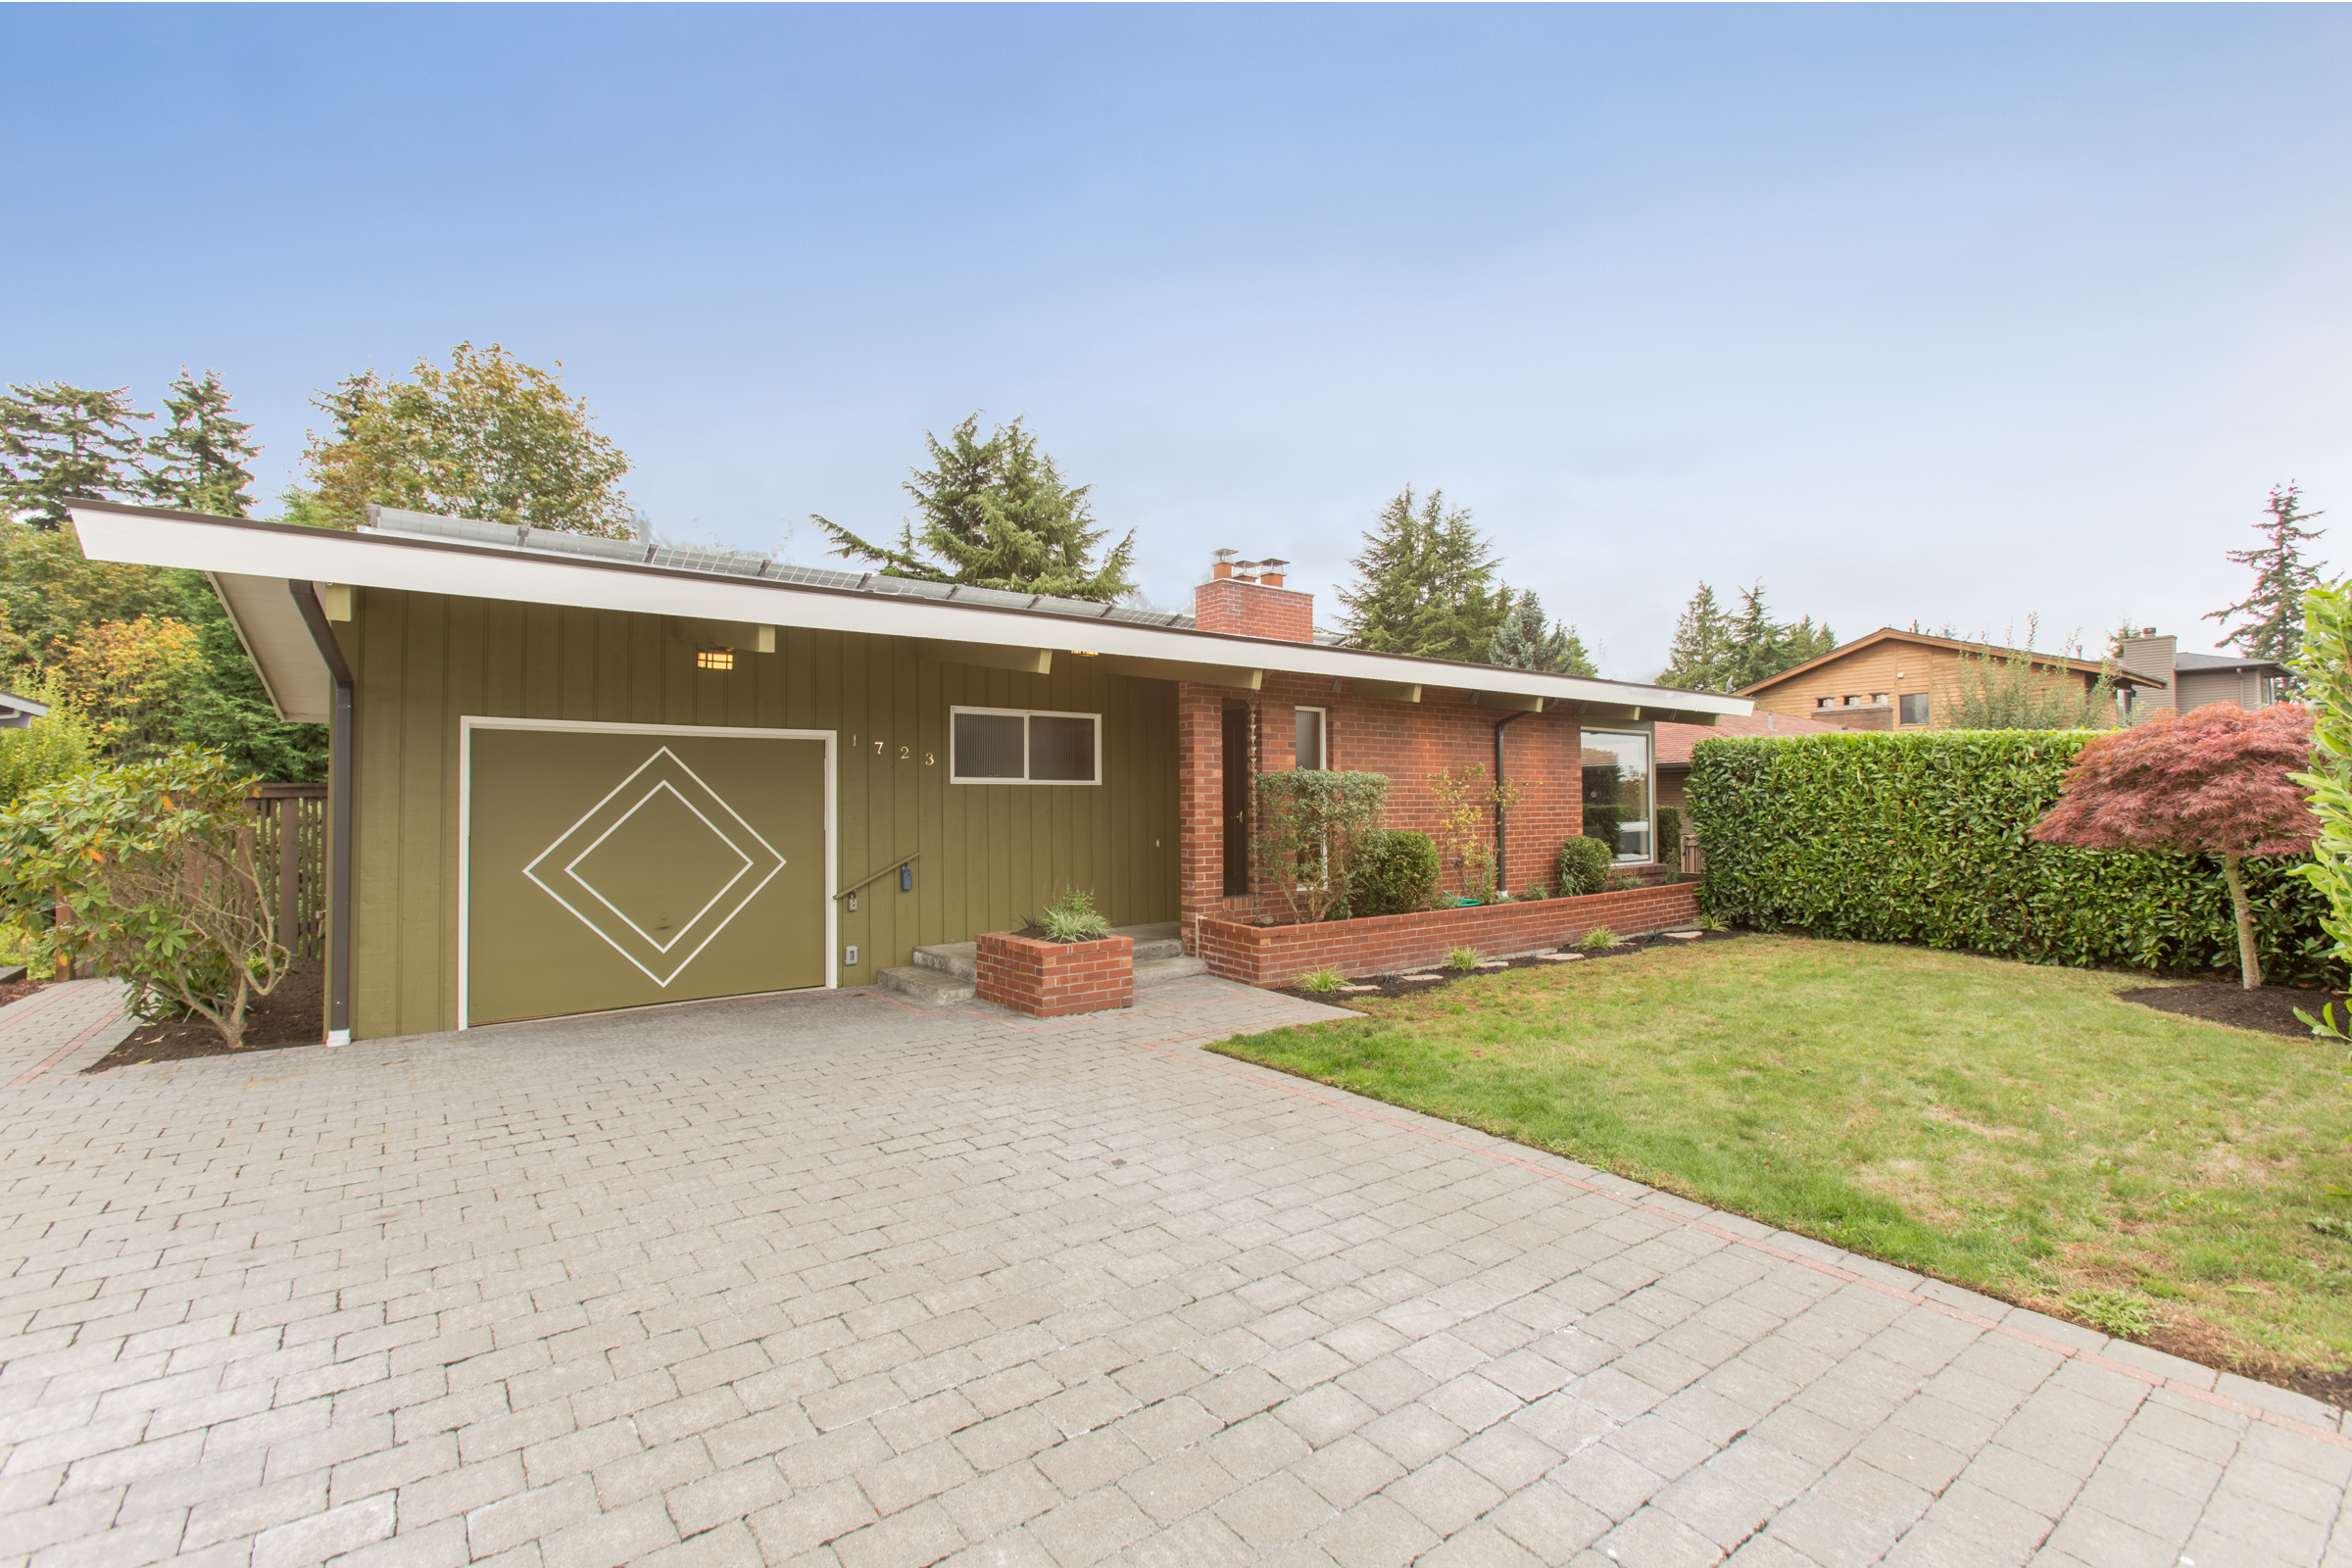 Single Family Home for Sale at King House 1723 NW 99th St Seattle, Washington 98117 United States